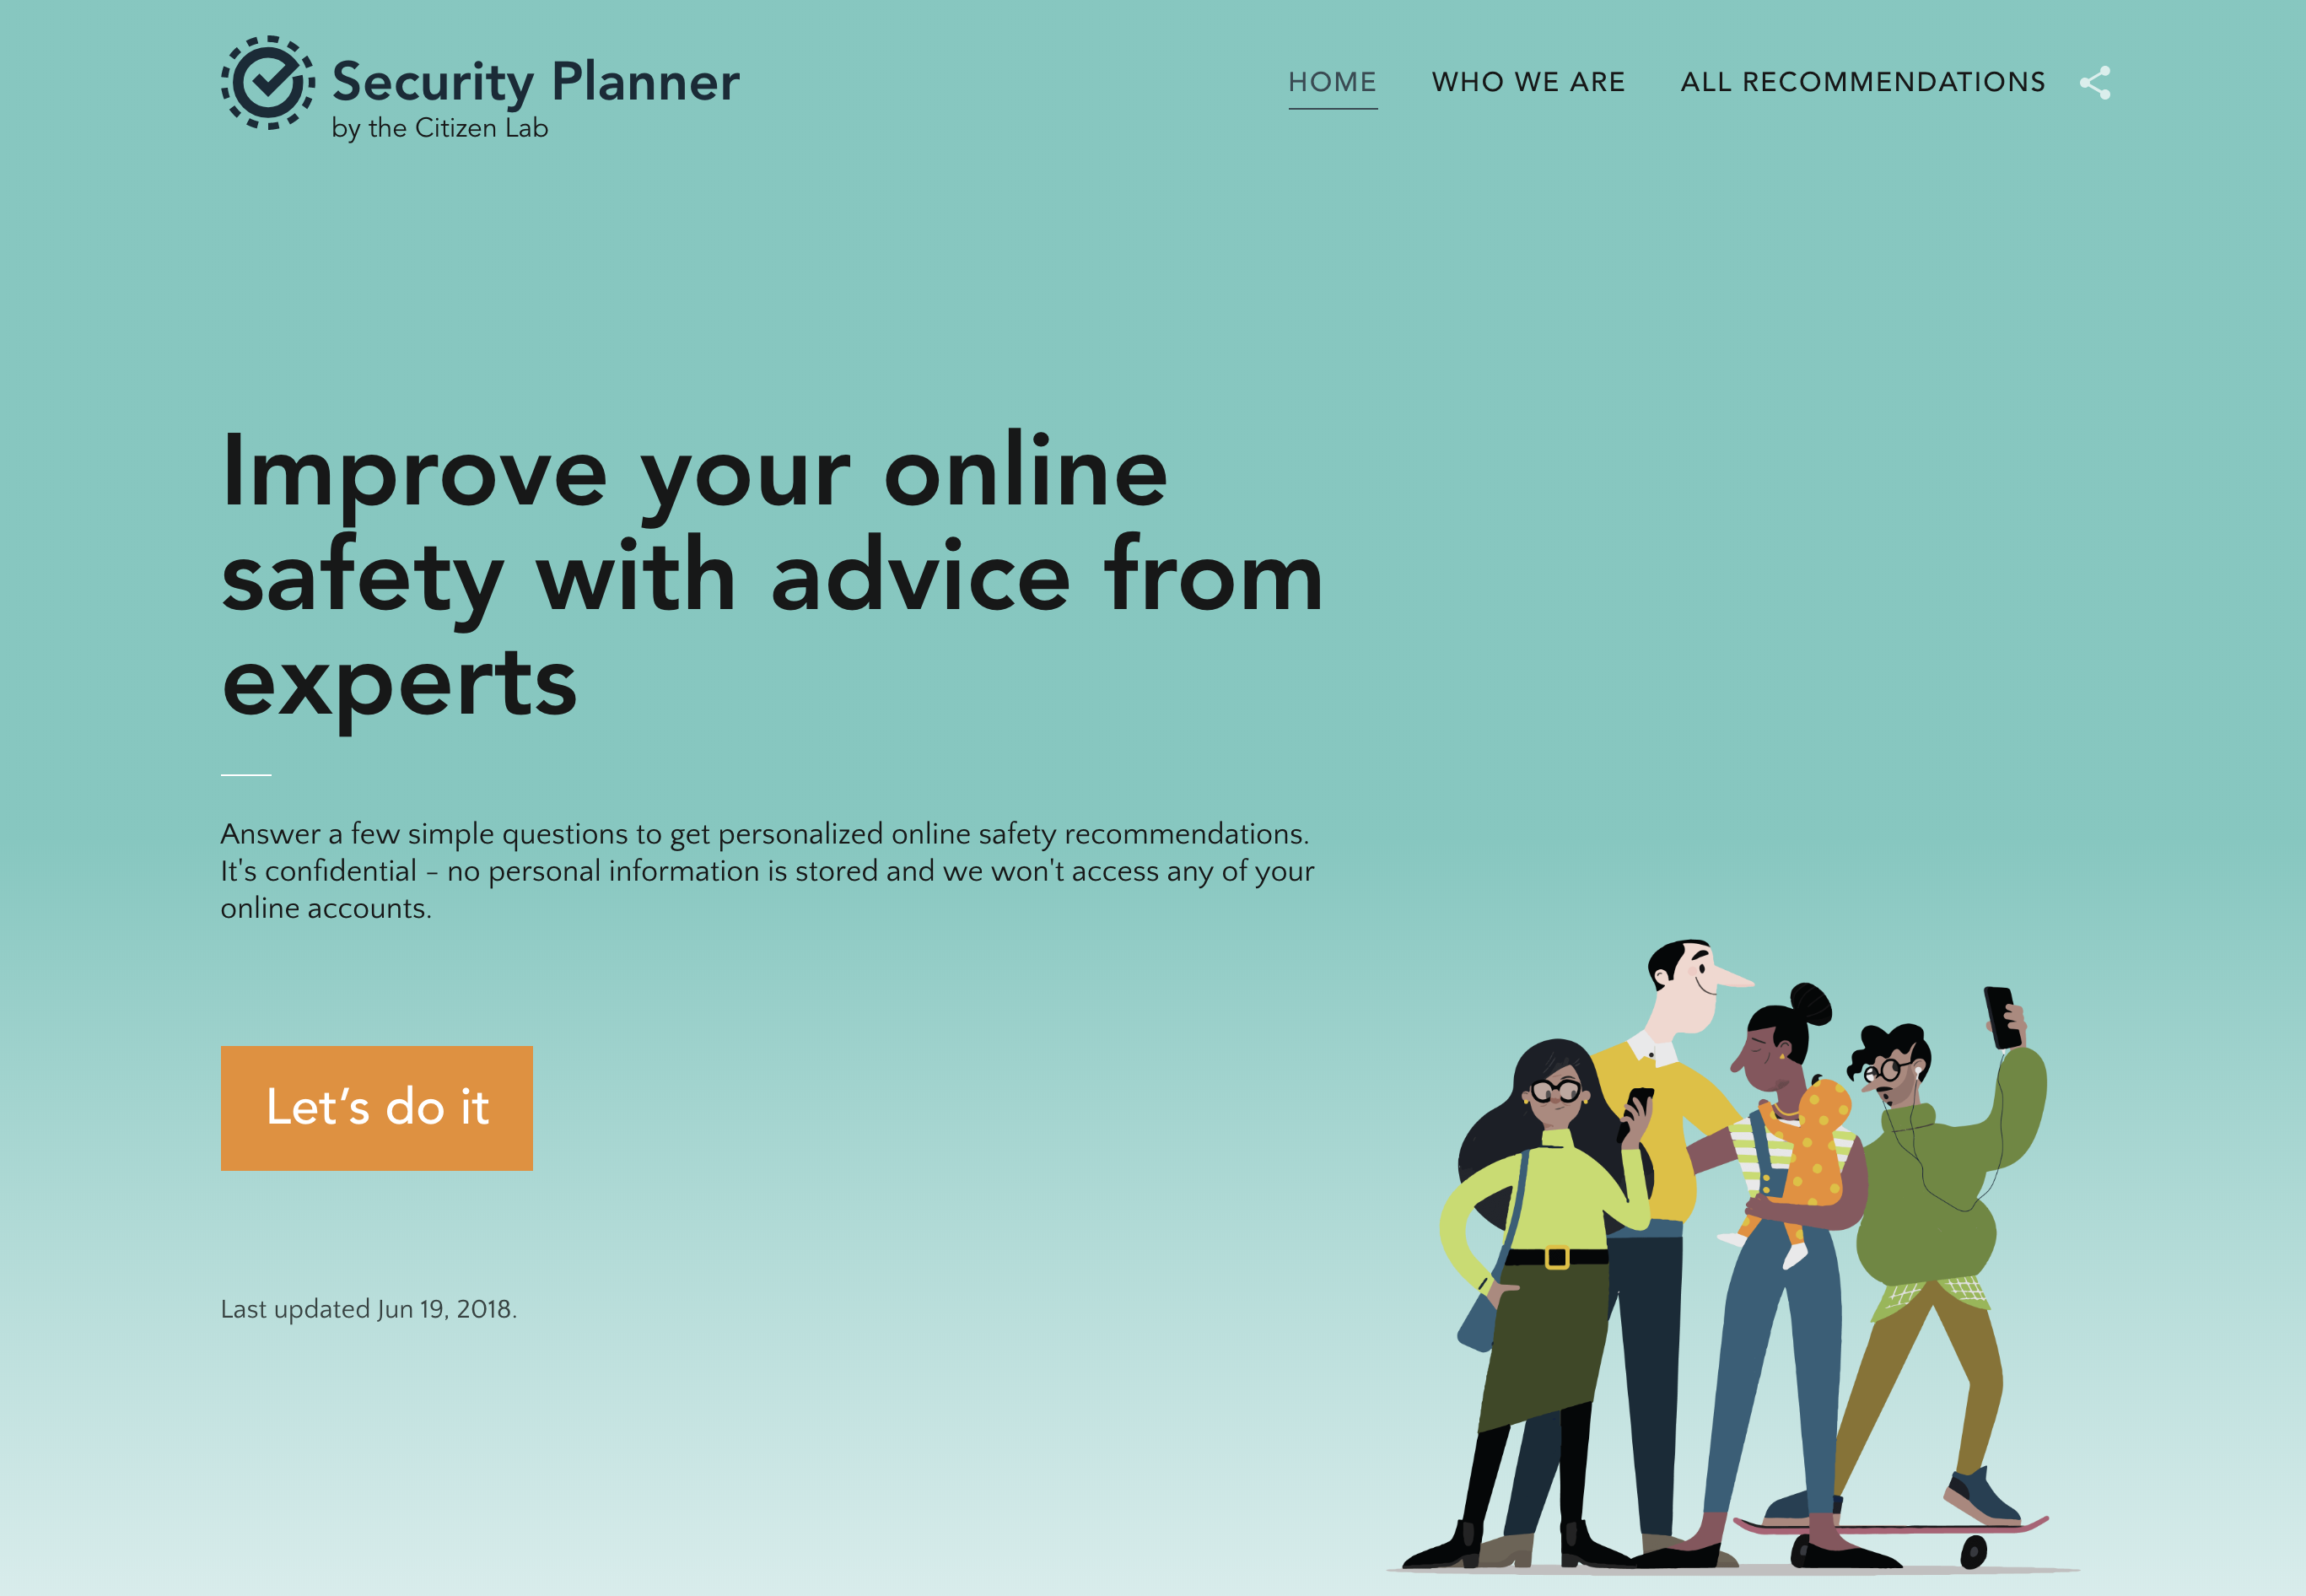 visit security planner to learn more about improving your online security